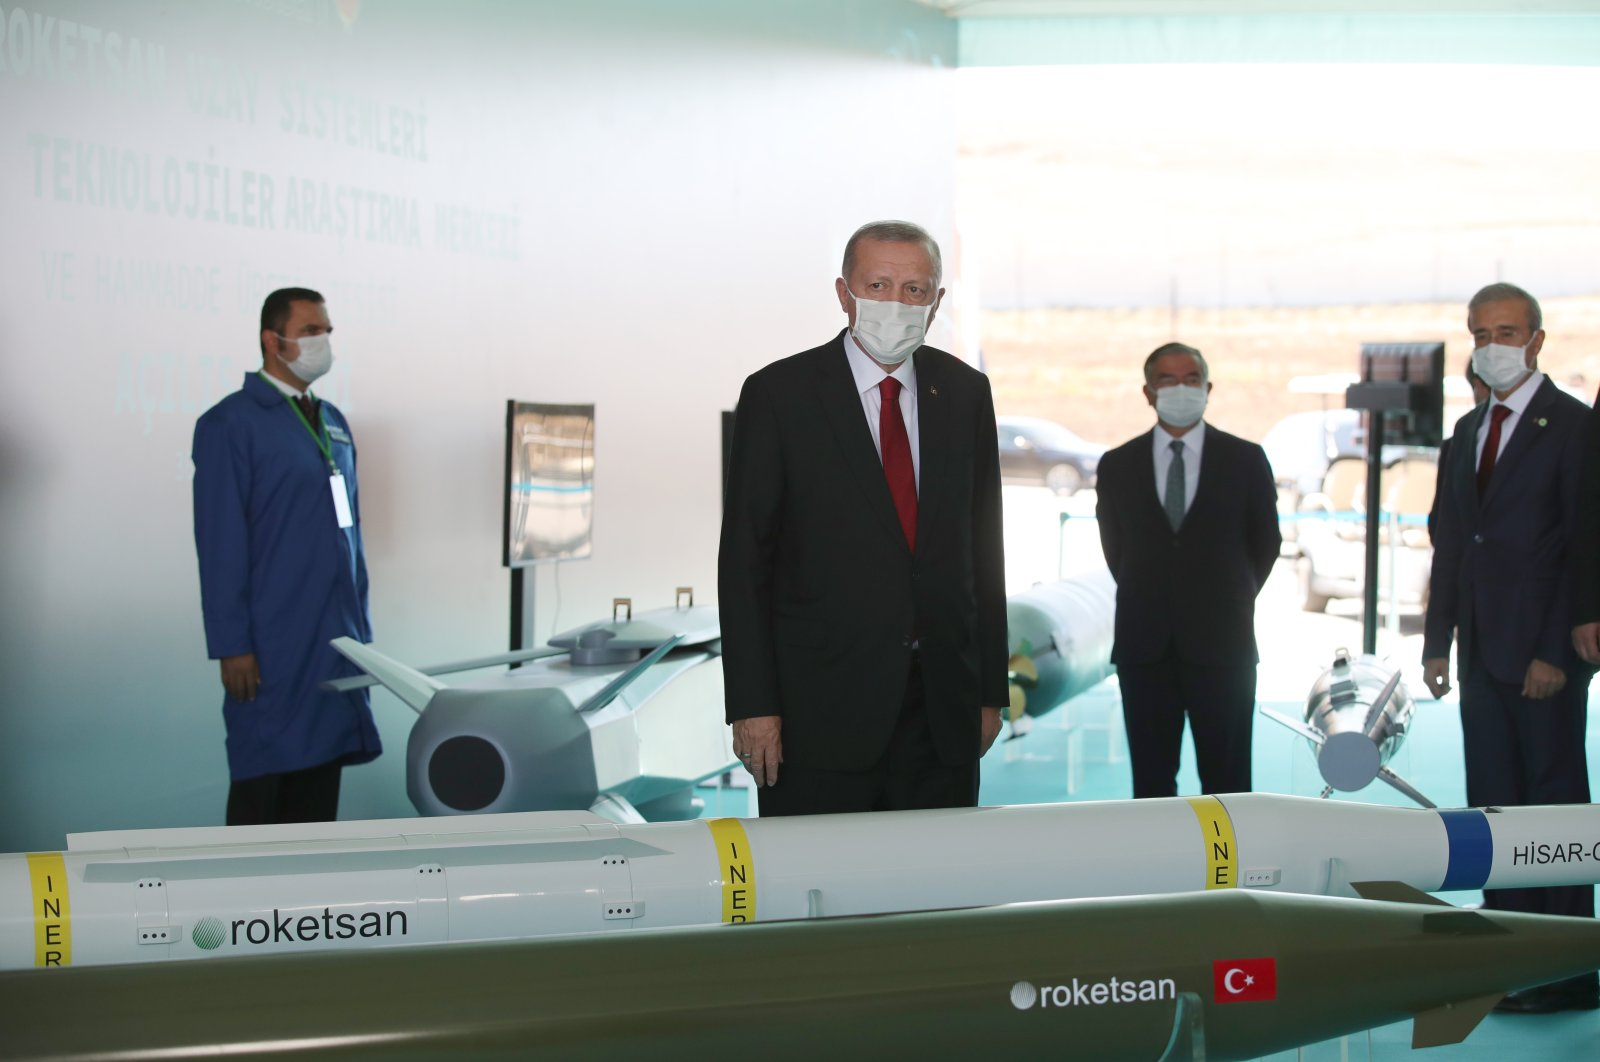 President Recep Tayyip Erdoğan visits Roketsan's Rocket Launch, Space Systems and Advanced Technologies Research Center in Ankara, Aug. 30, 2020. (AA Photo)